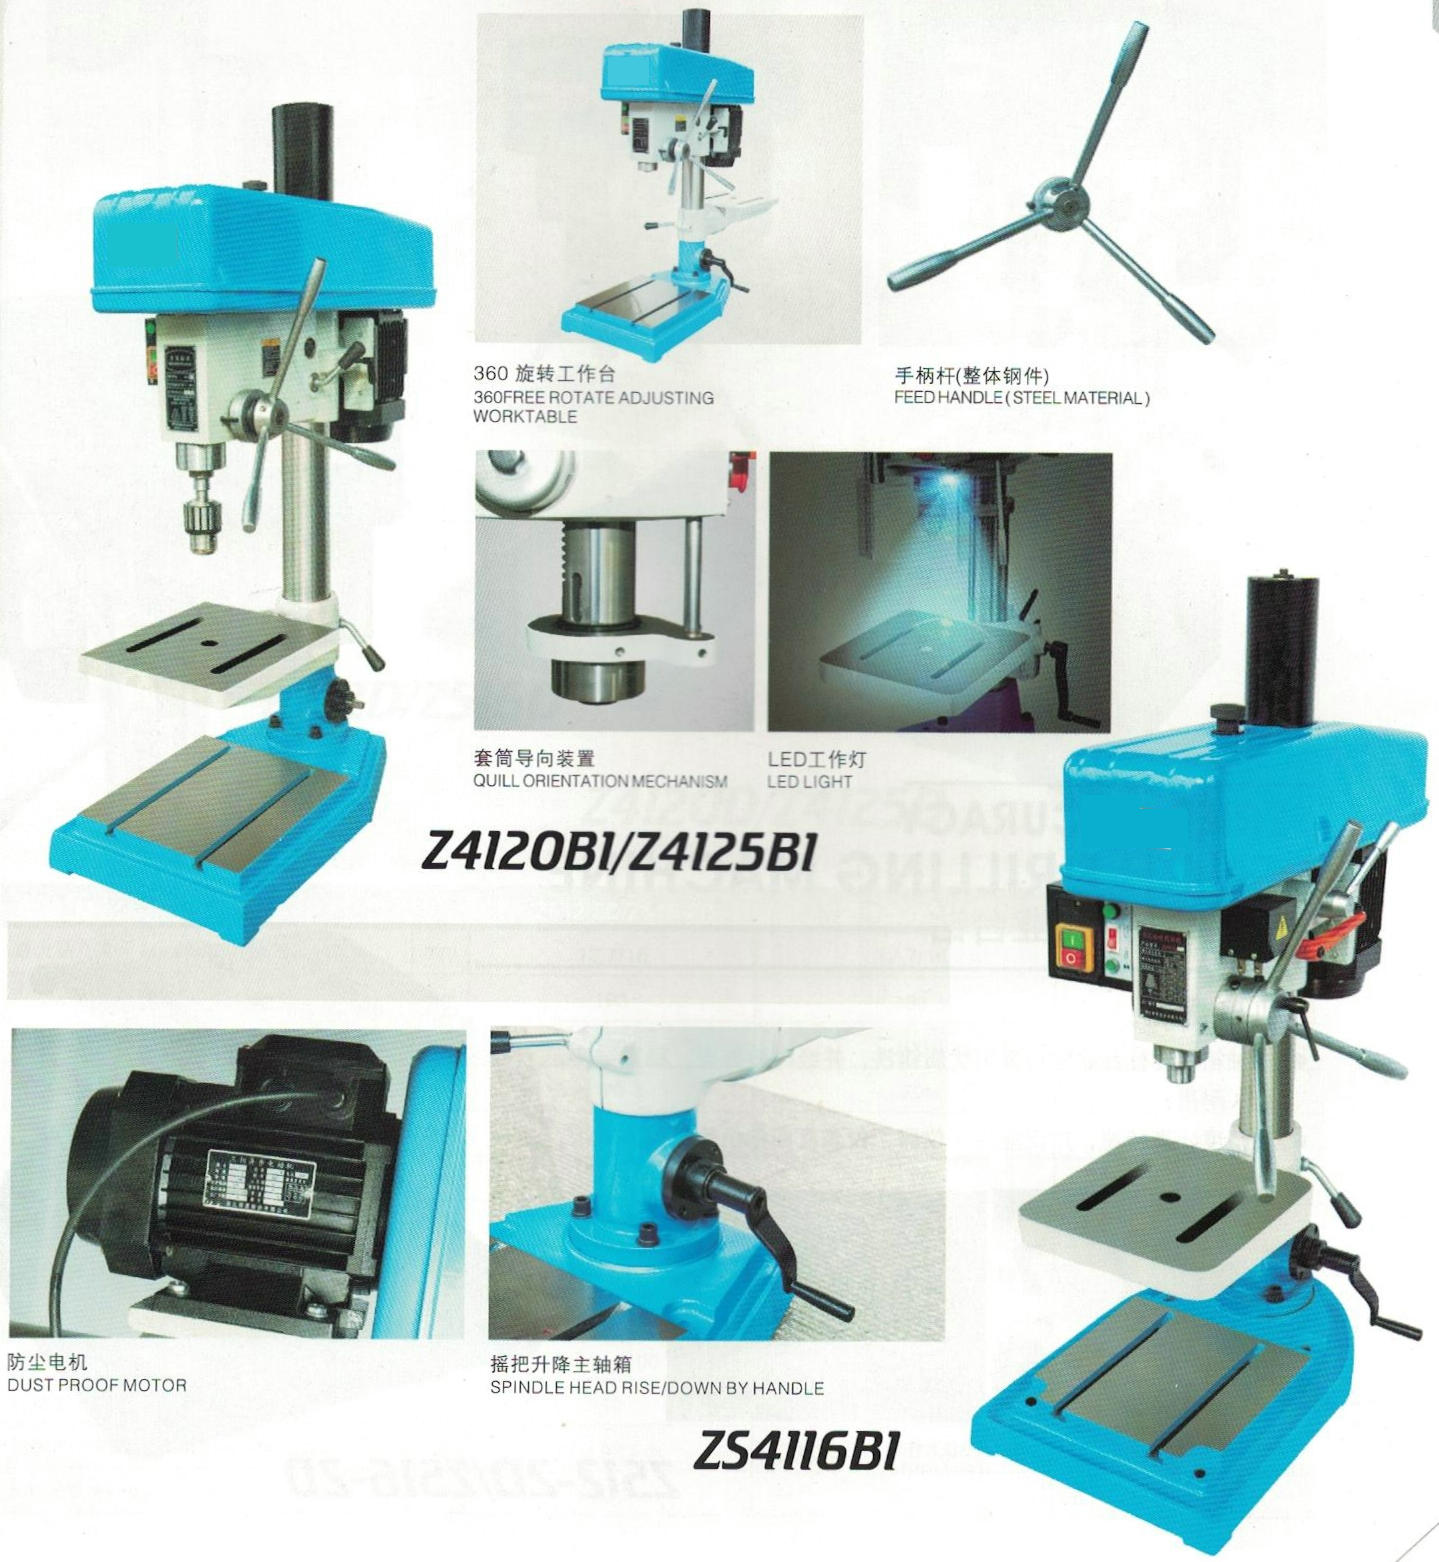 B1 SERIES PREMIUM QUALITY DRILLING MACHINE Z4120B1